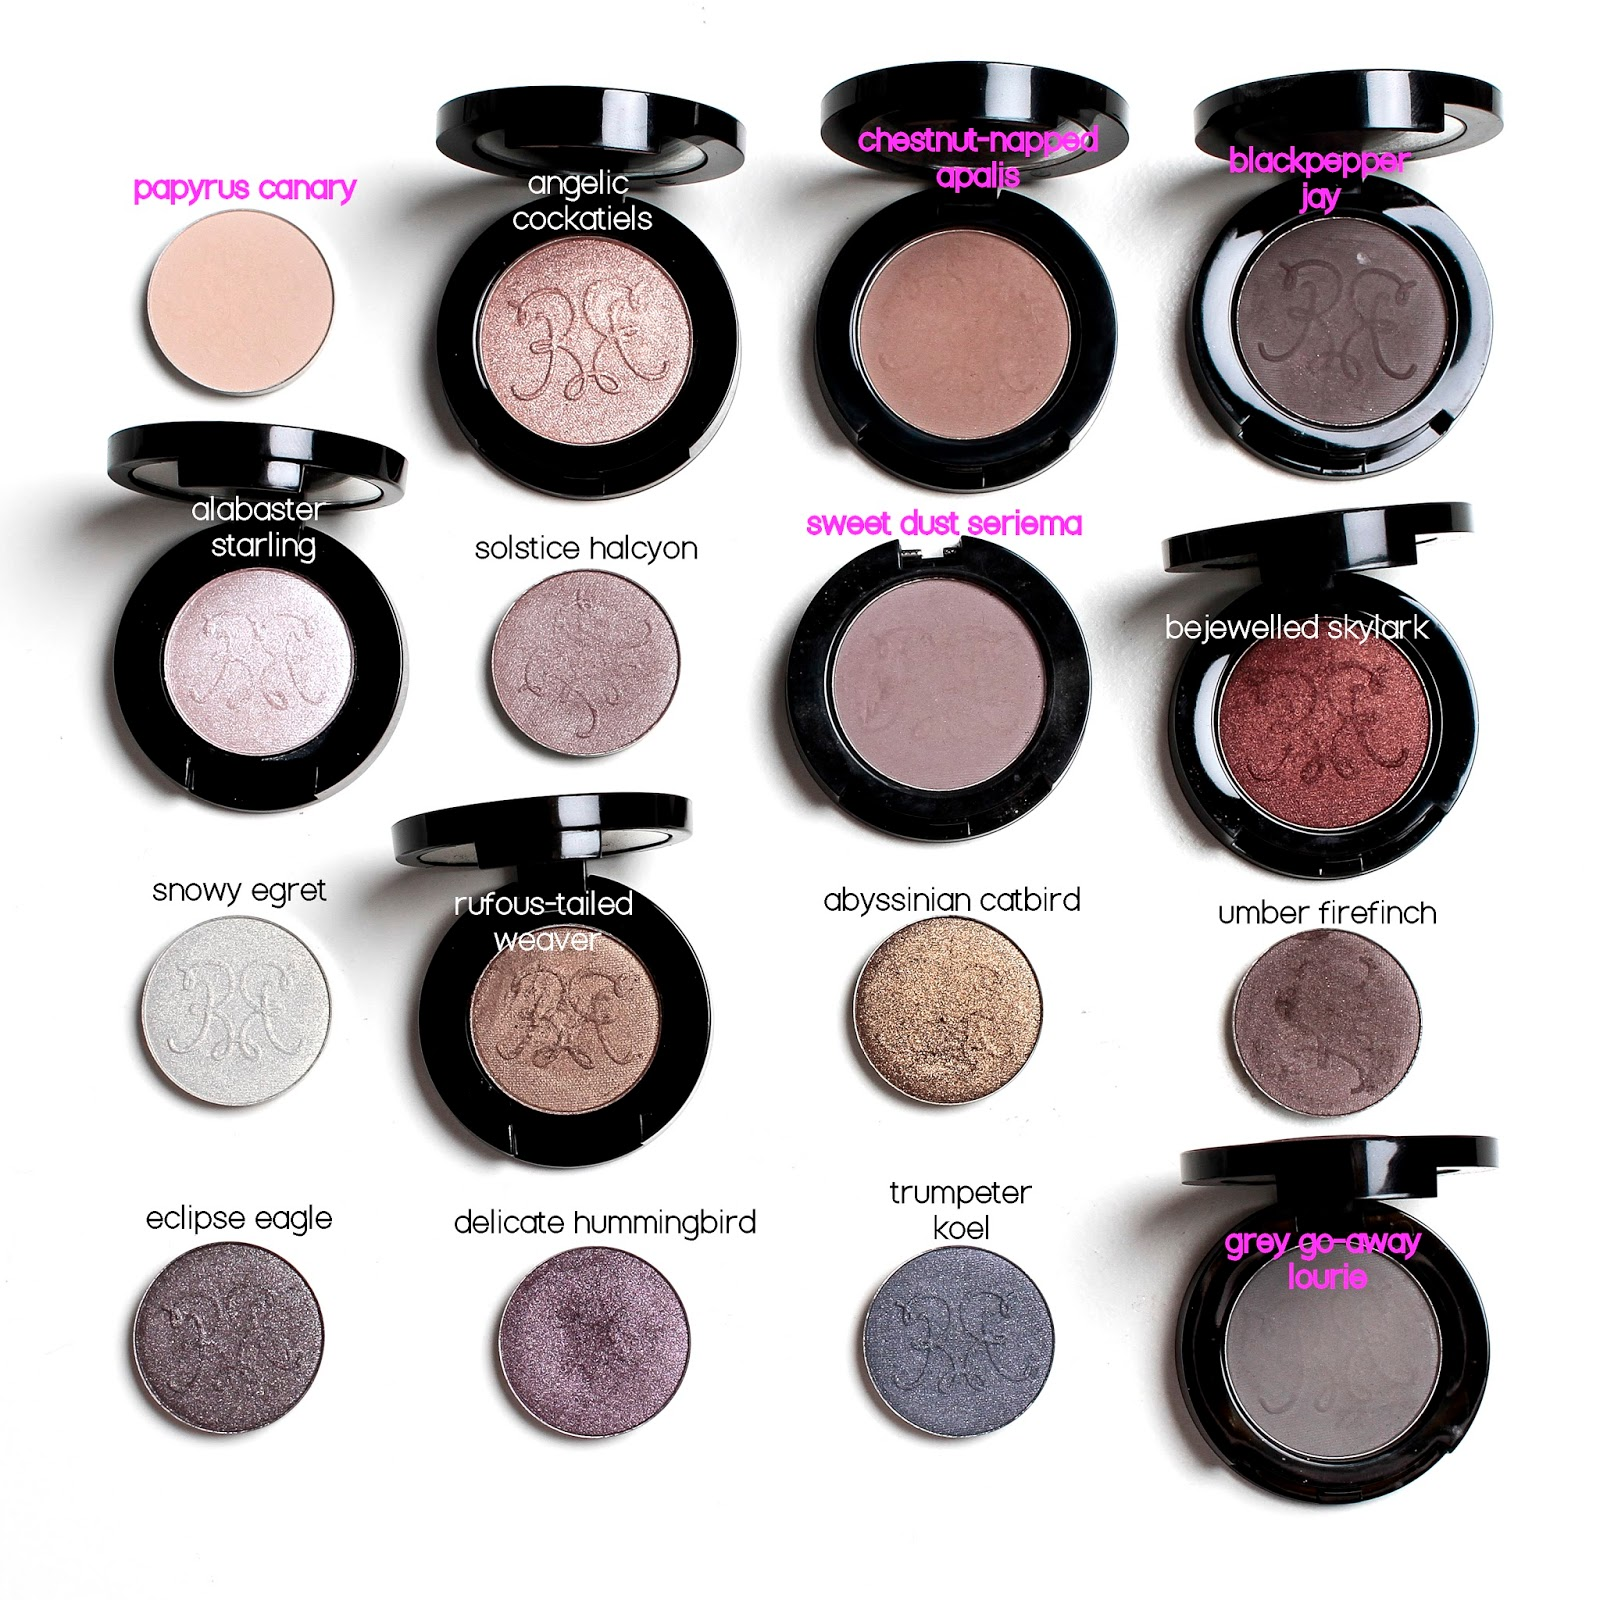 photo of 16 neutral RBR eyeshadows including all 5 matte shades